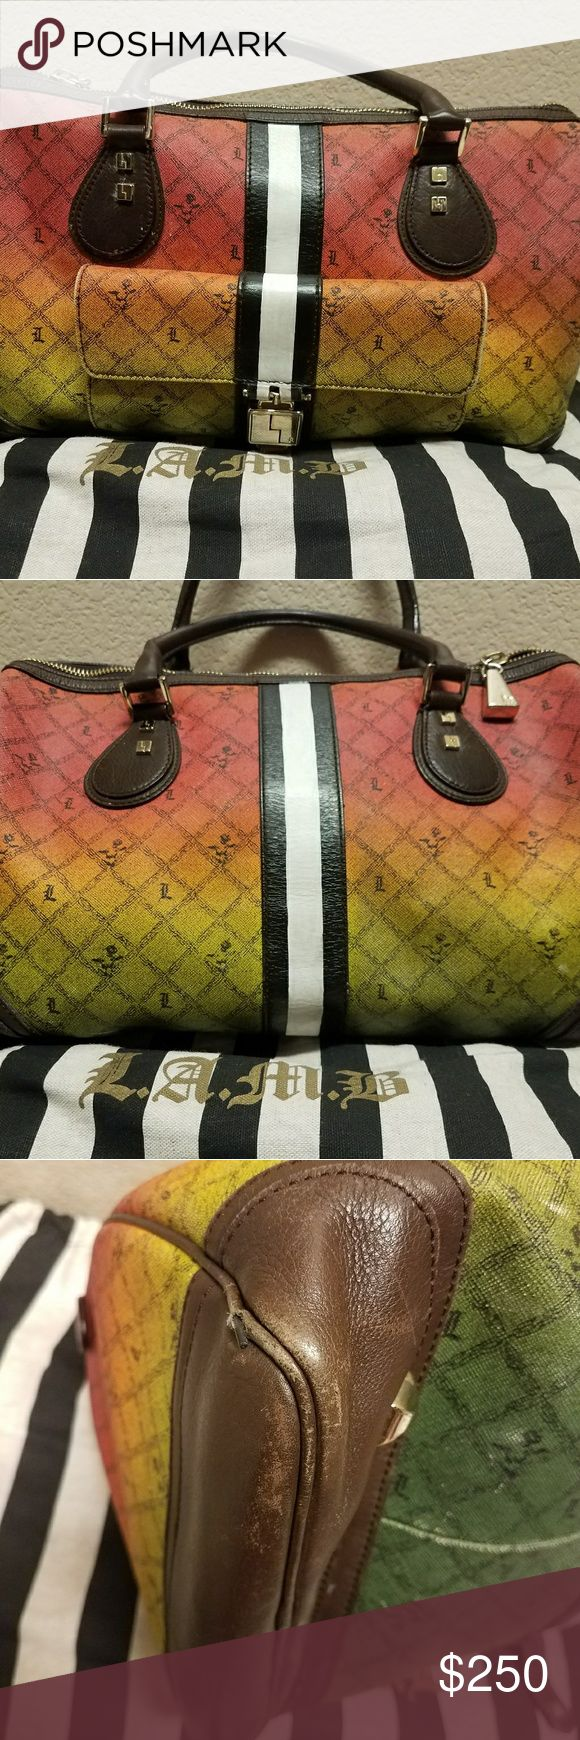 L.a.m.b gwen stefani rasta alston Lamb gwen stefani large rasta alston satchel. Good used condition. One edge has piping showing as pictured. Smoke free home. Bought and never used, needs a good home. L.A.M.B. Bags